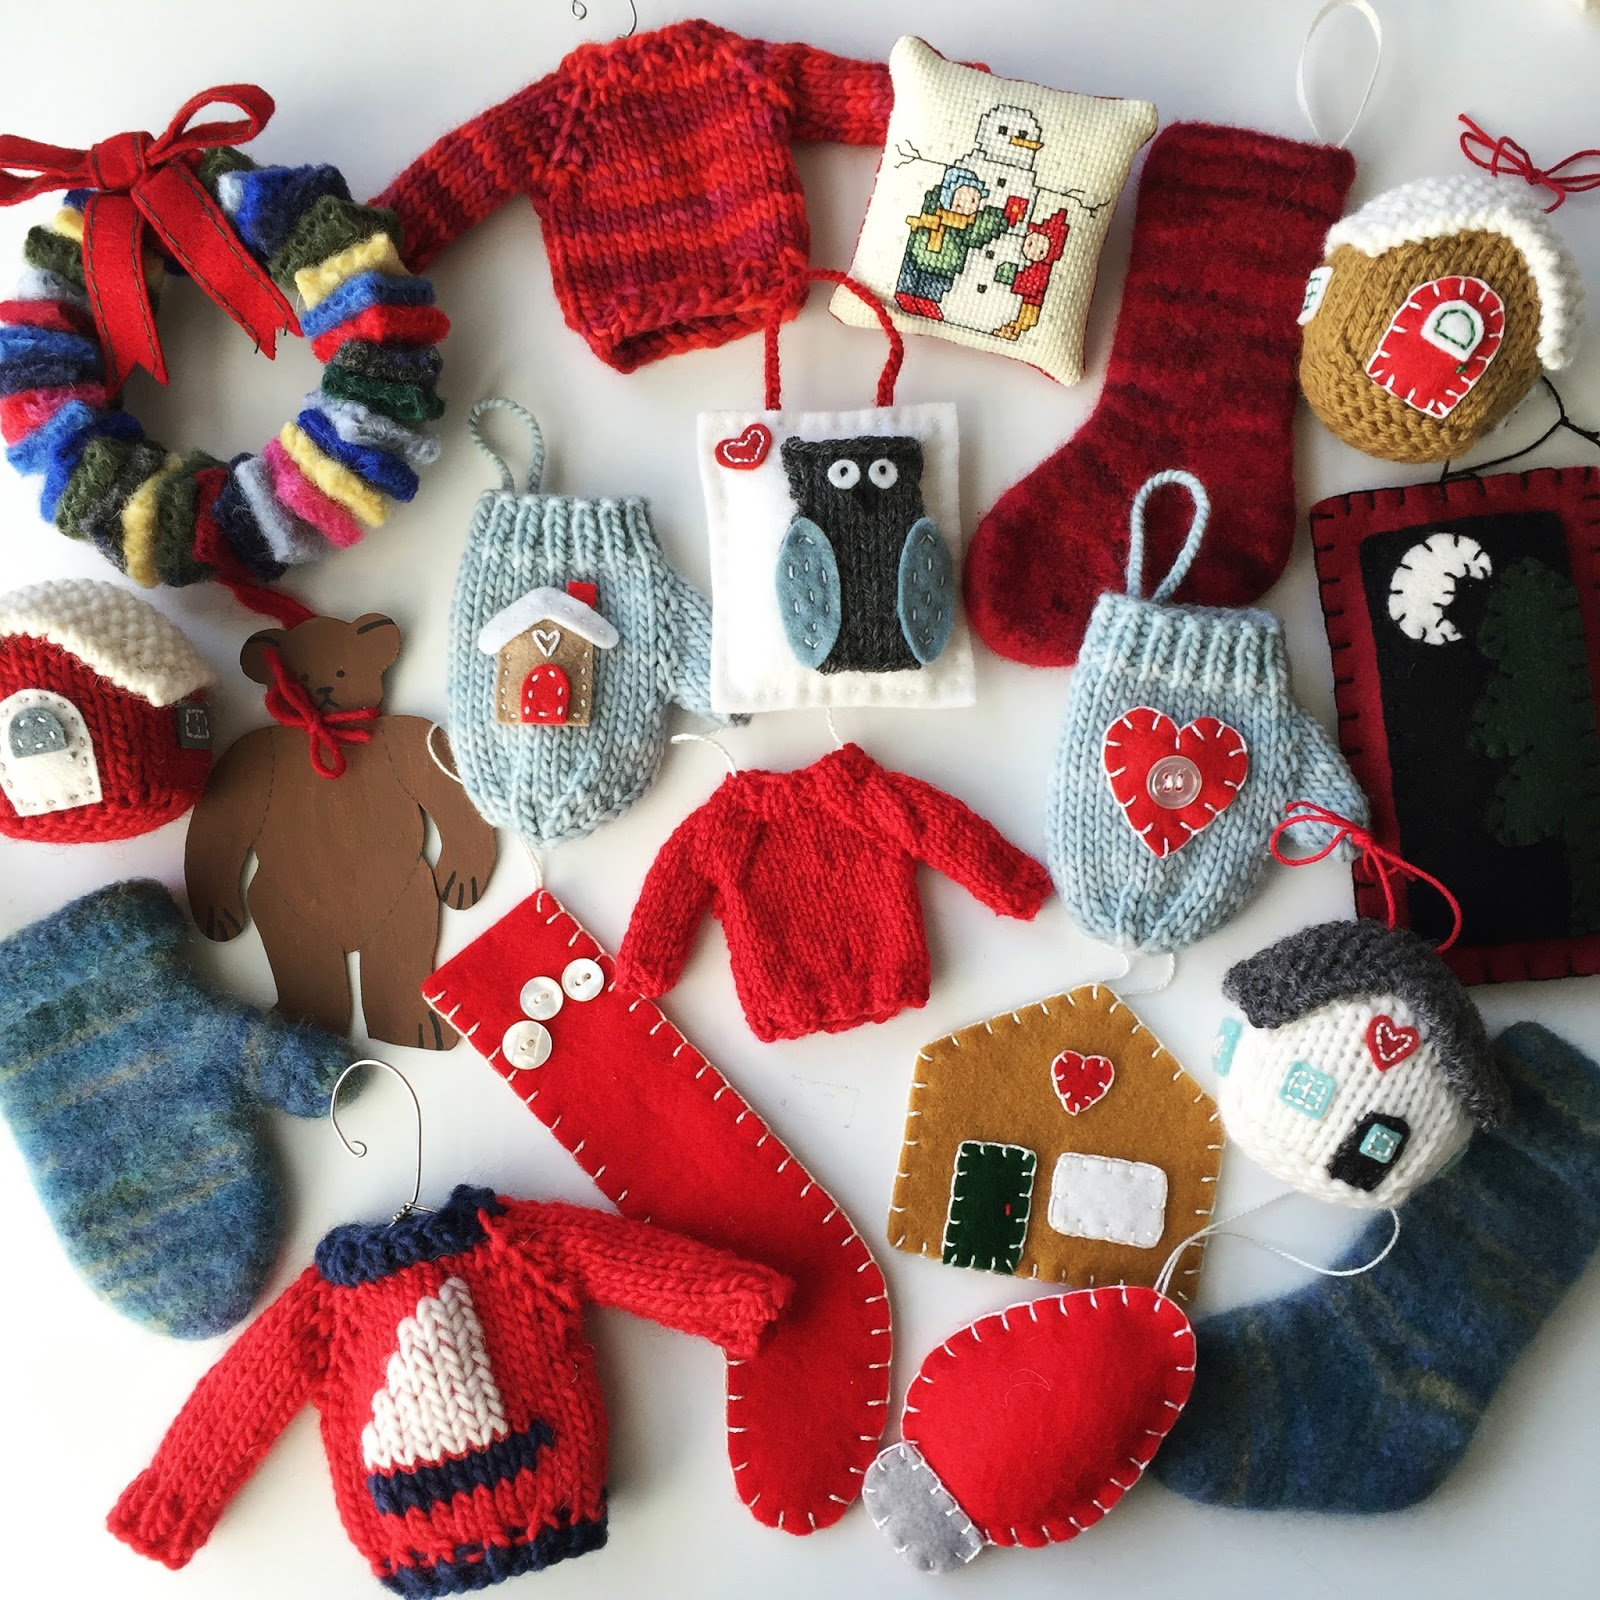 Fifty Four Ten Studio: My Annual Tradition - Making Homemade ...